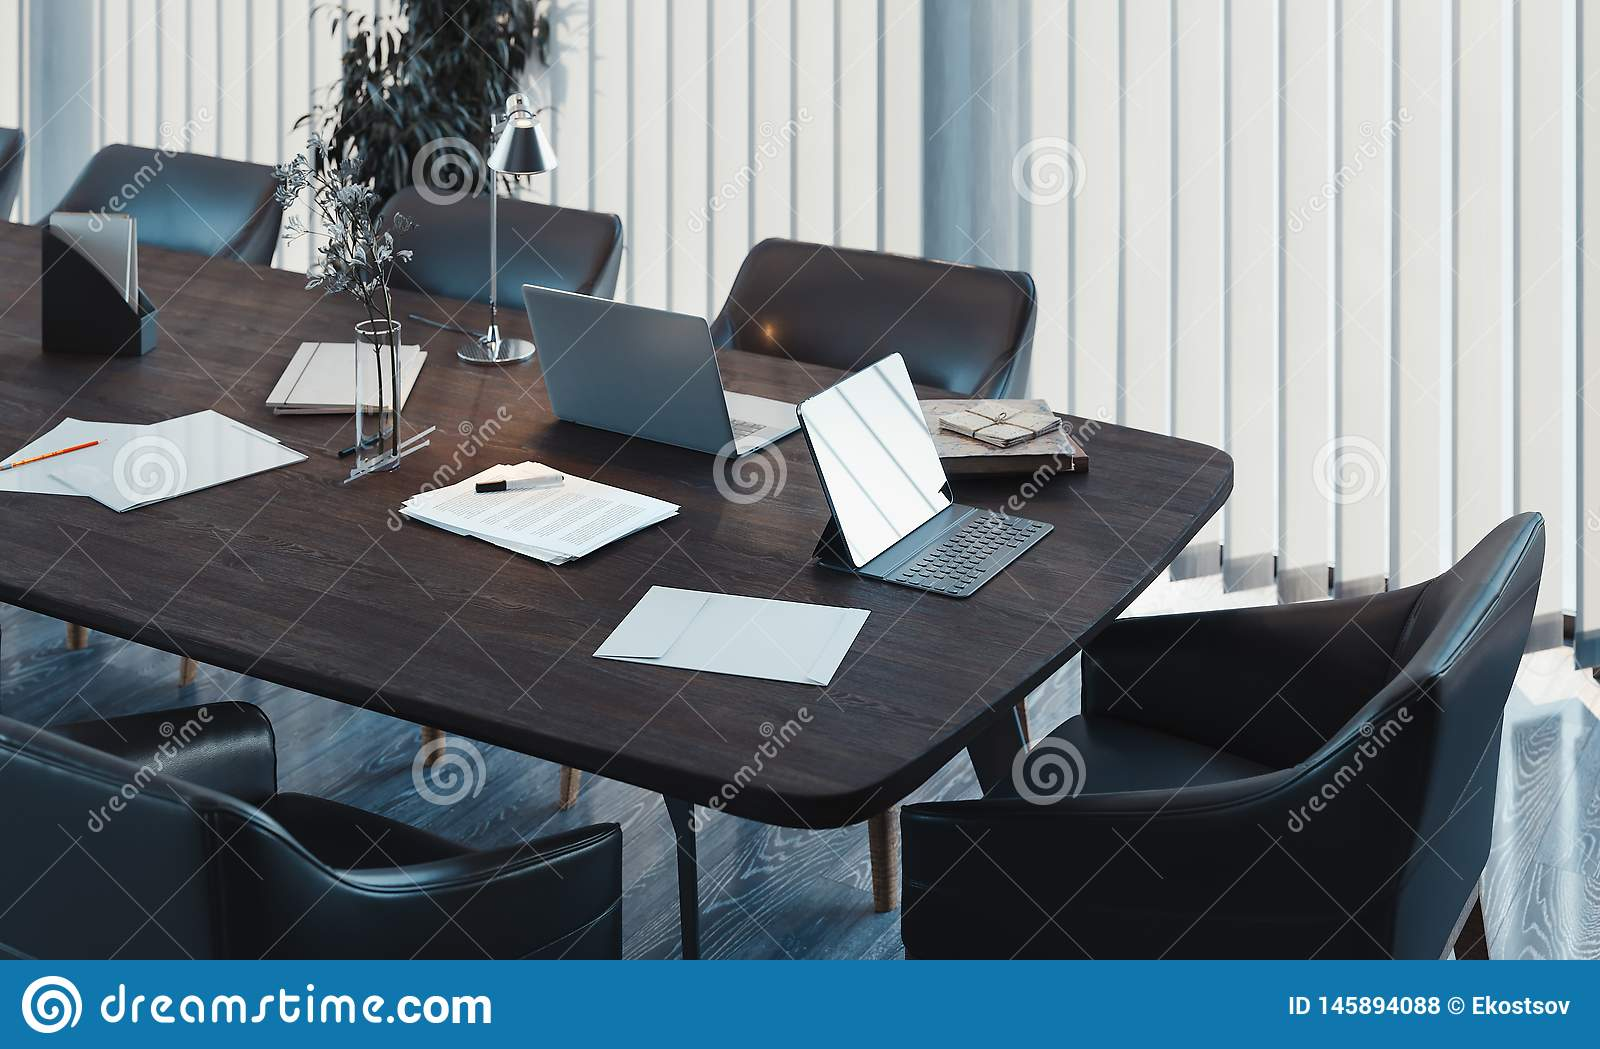 Stylish Conference Room Interior With Big Window And Wooden Table 3d Rendering Illustration Stock Illustration Du Table Wooden 145894088